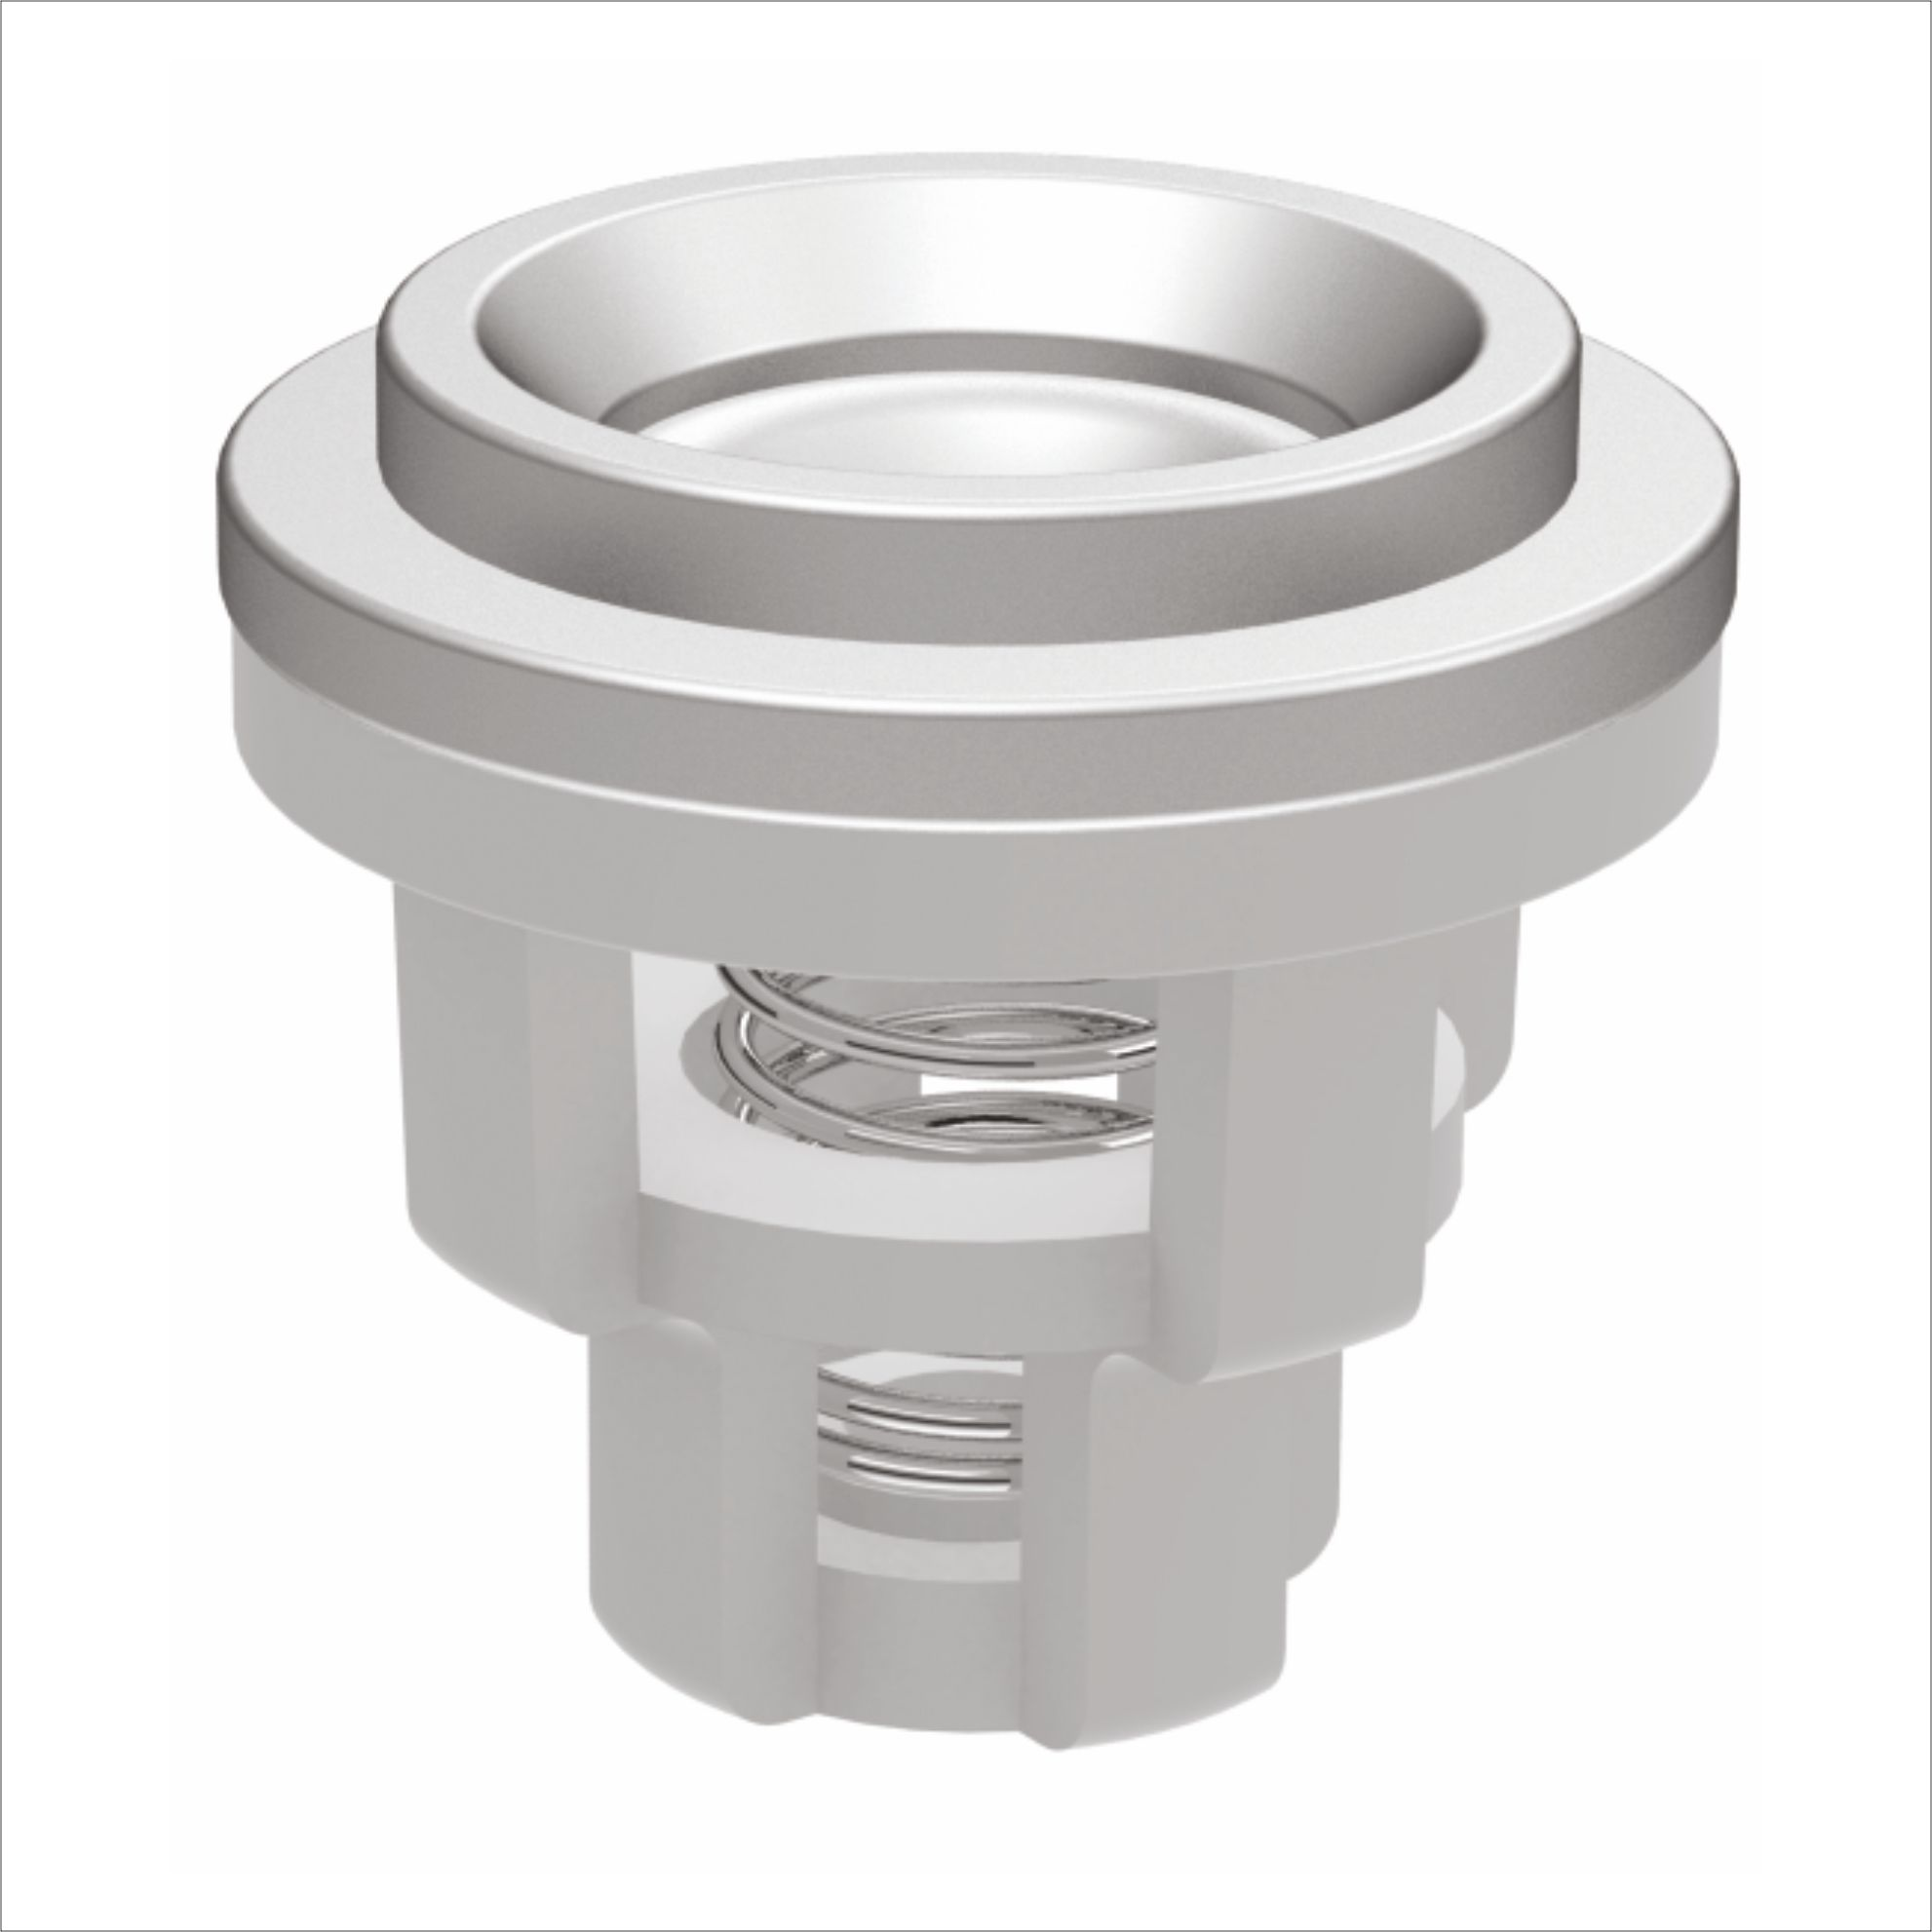 SUCTION DELIVERY VALVE FOR MTS 496 /371 S